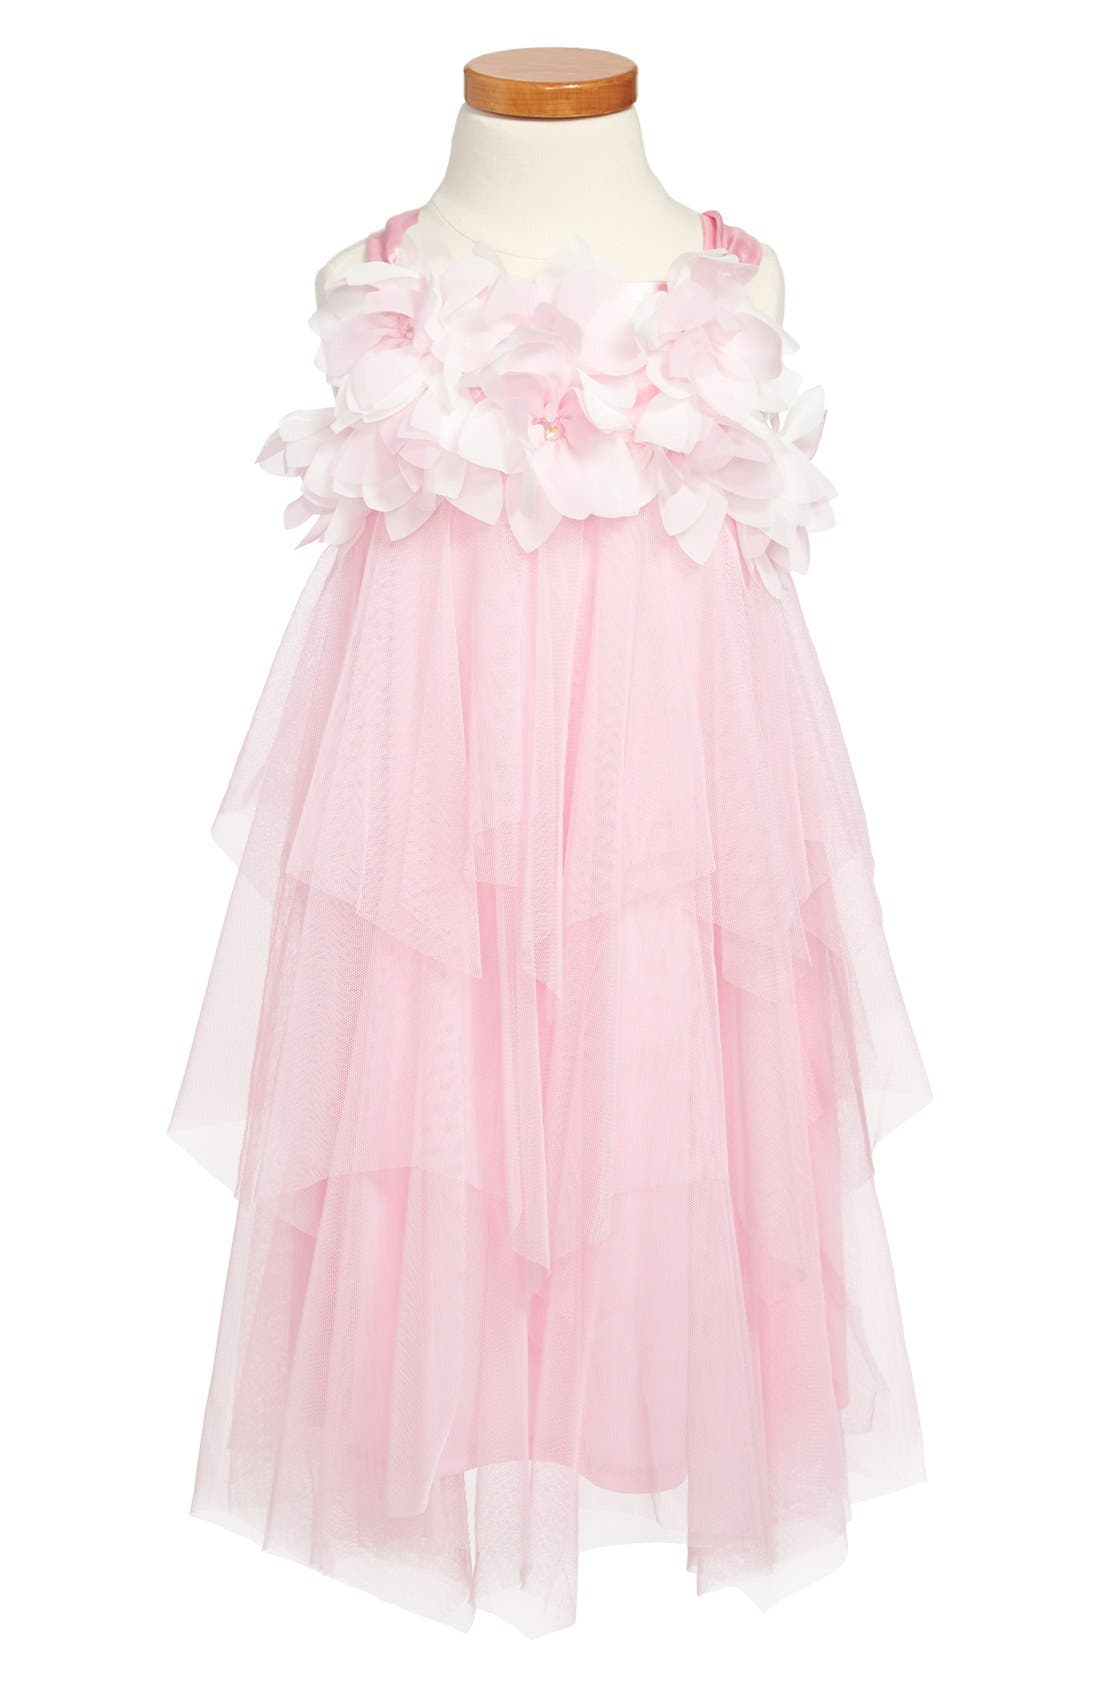 Main Image - Biscotti Floral Tiered Dress (Little Girls & Big Girls)